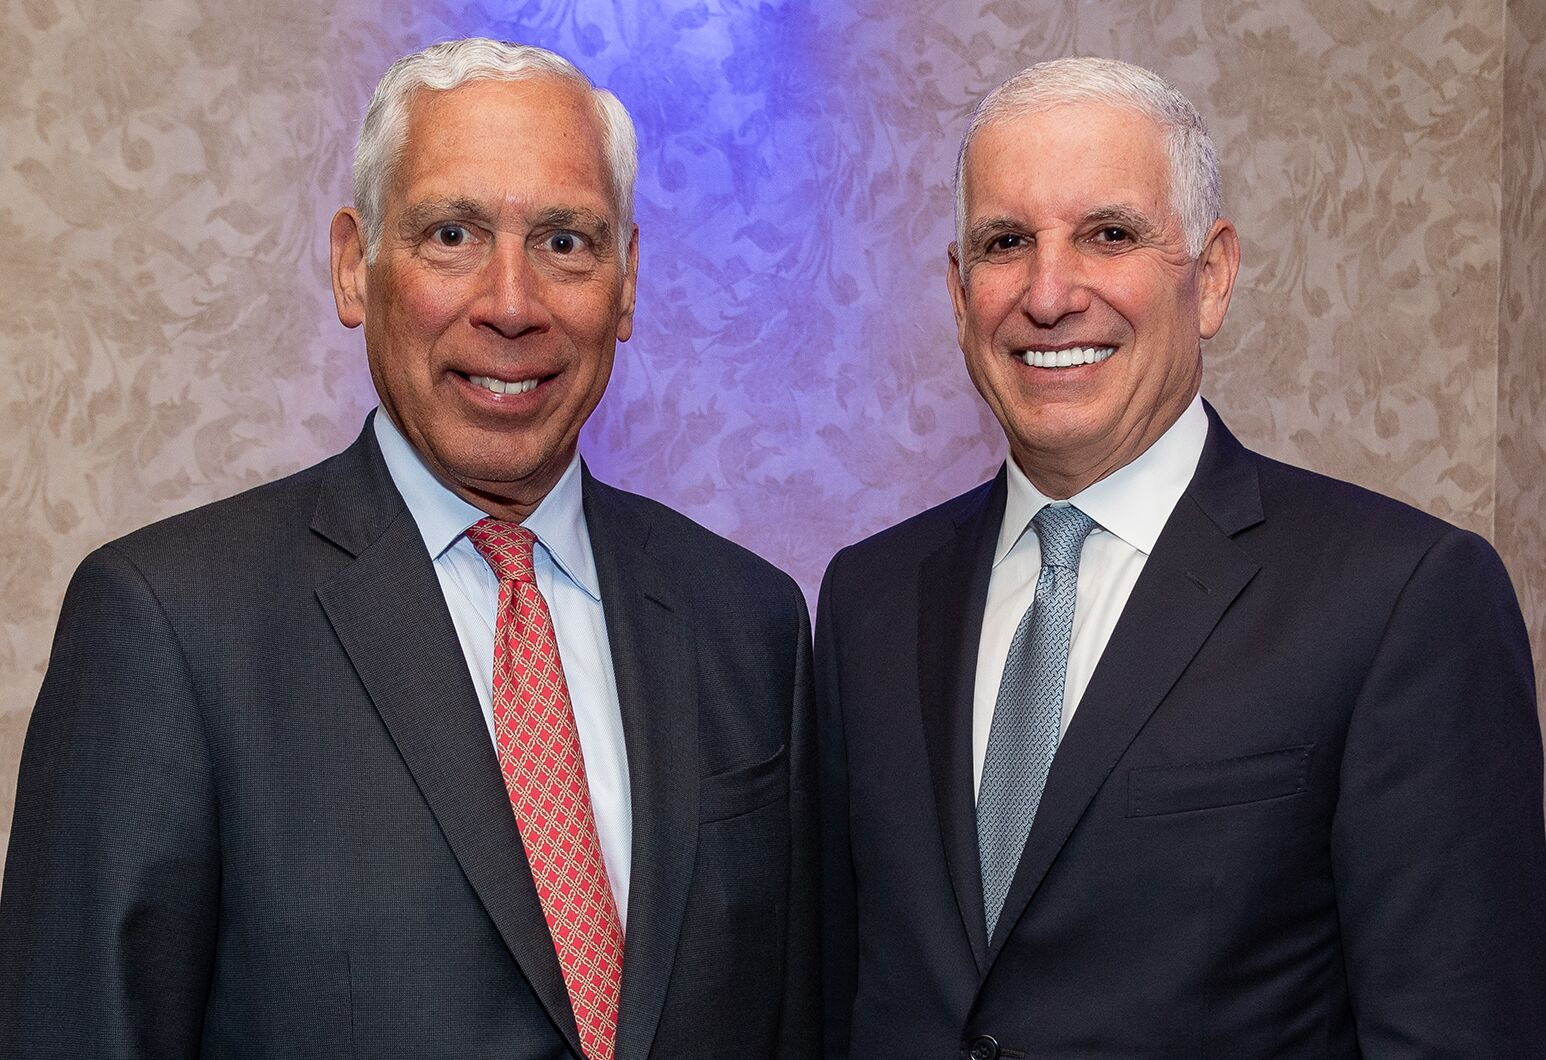 From left: Michael A. Epstein succeeds Mark L. Claster as chair of the Northwell Health Board of Trustees.